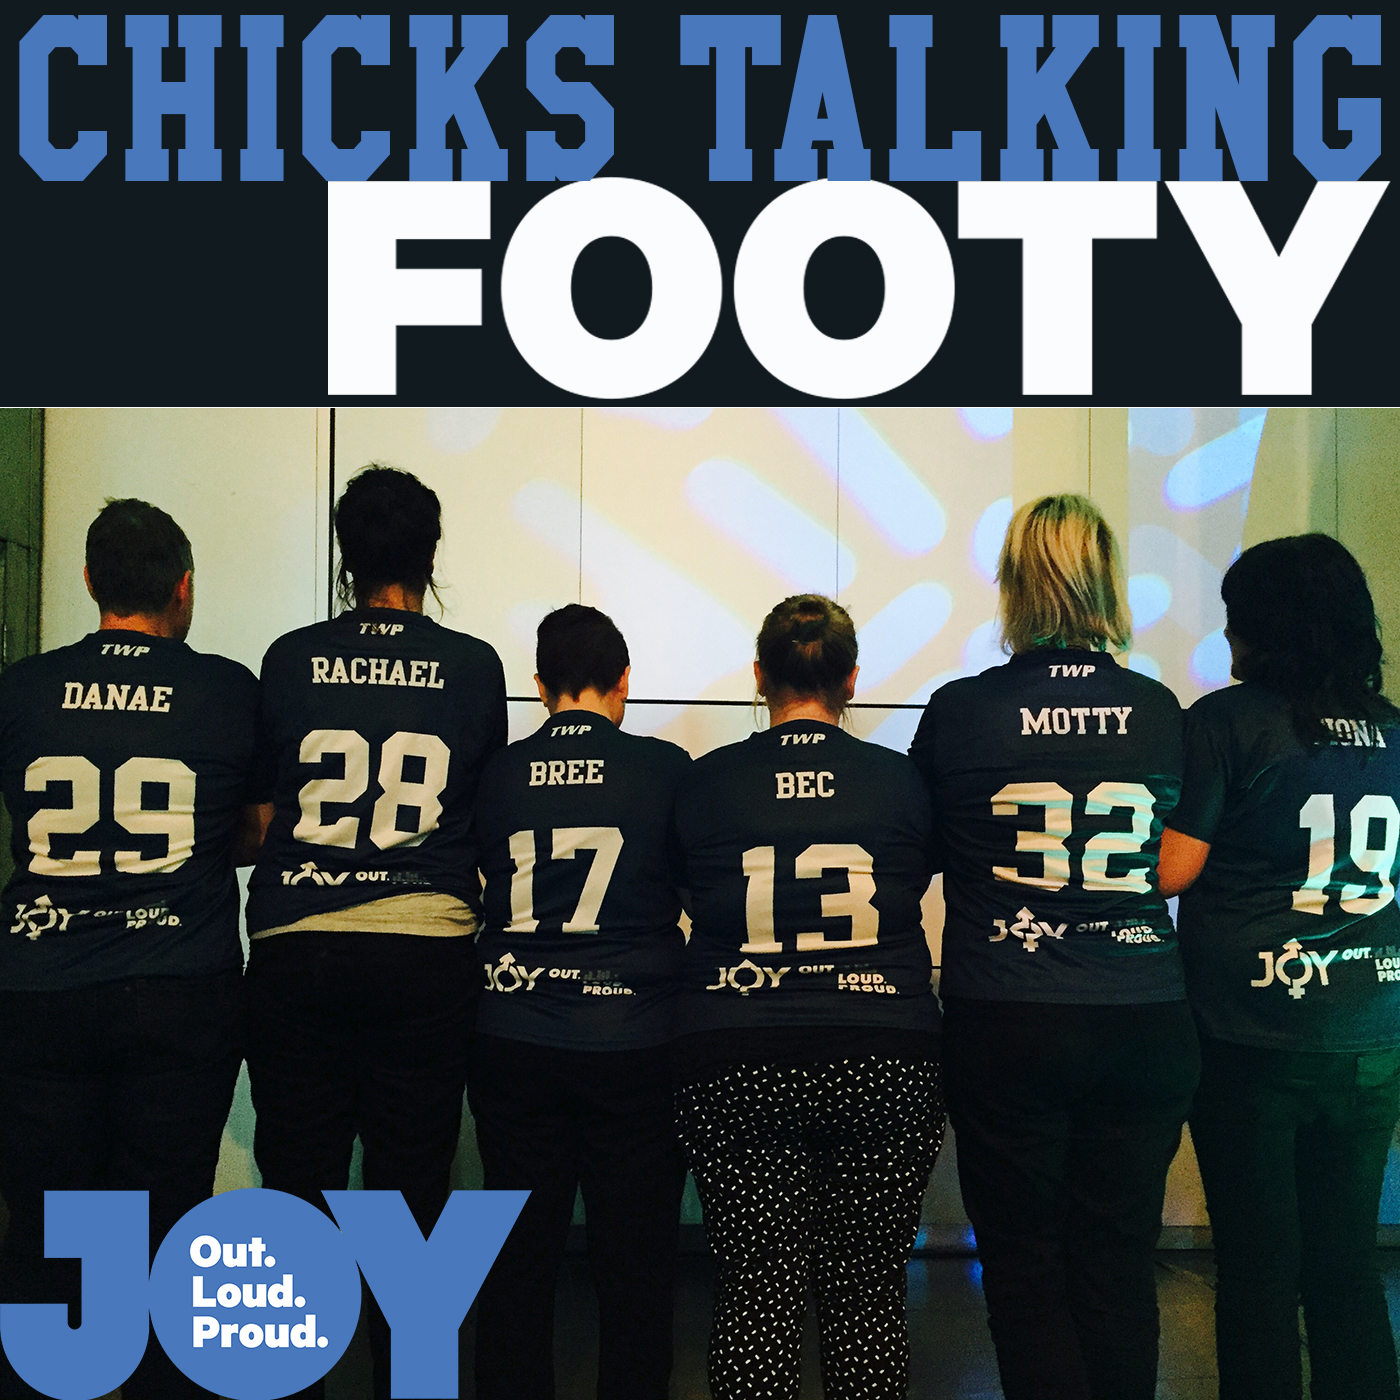 Chicks Talking Footy